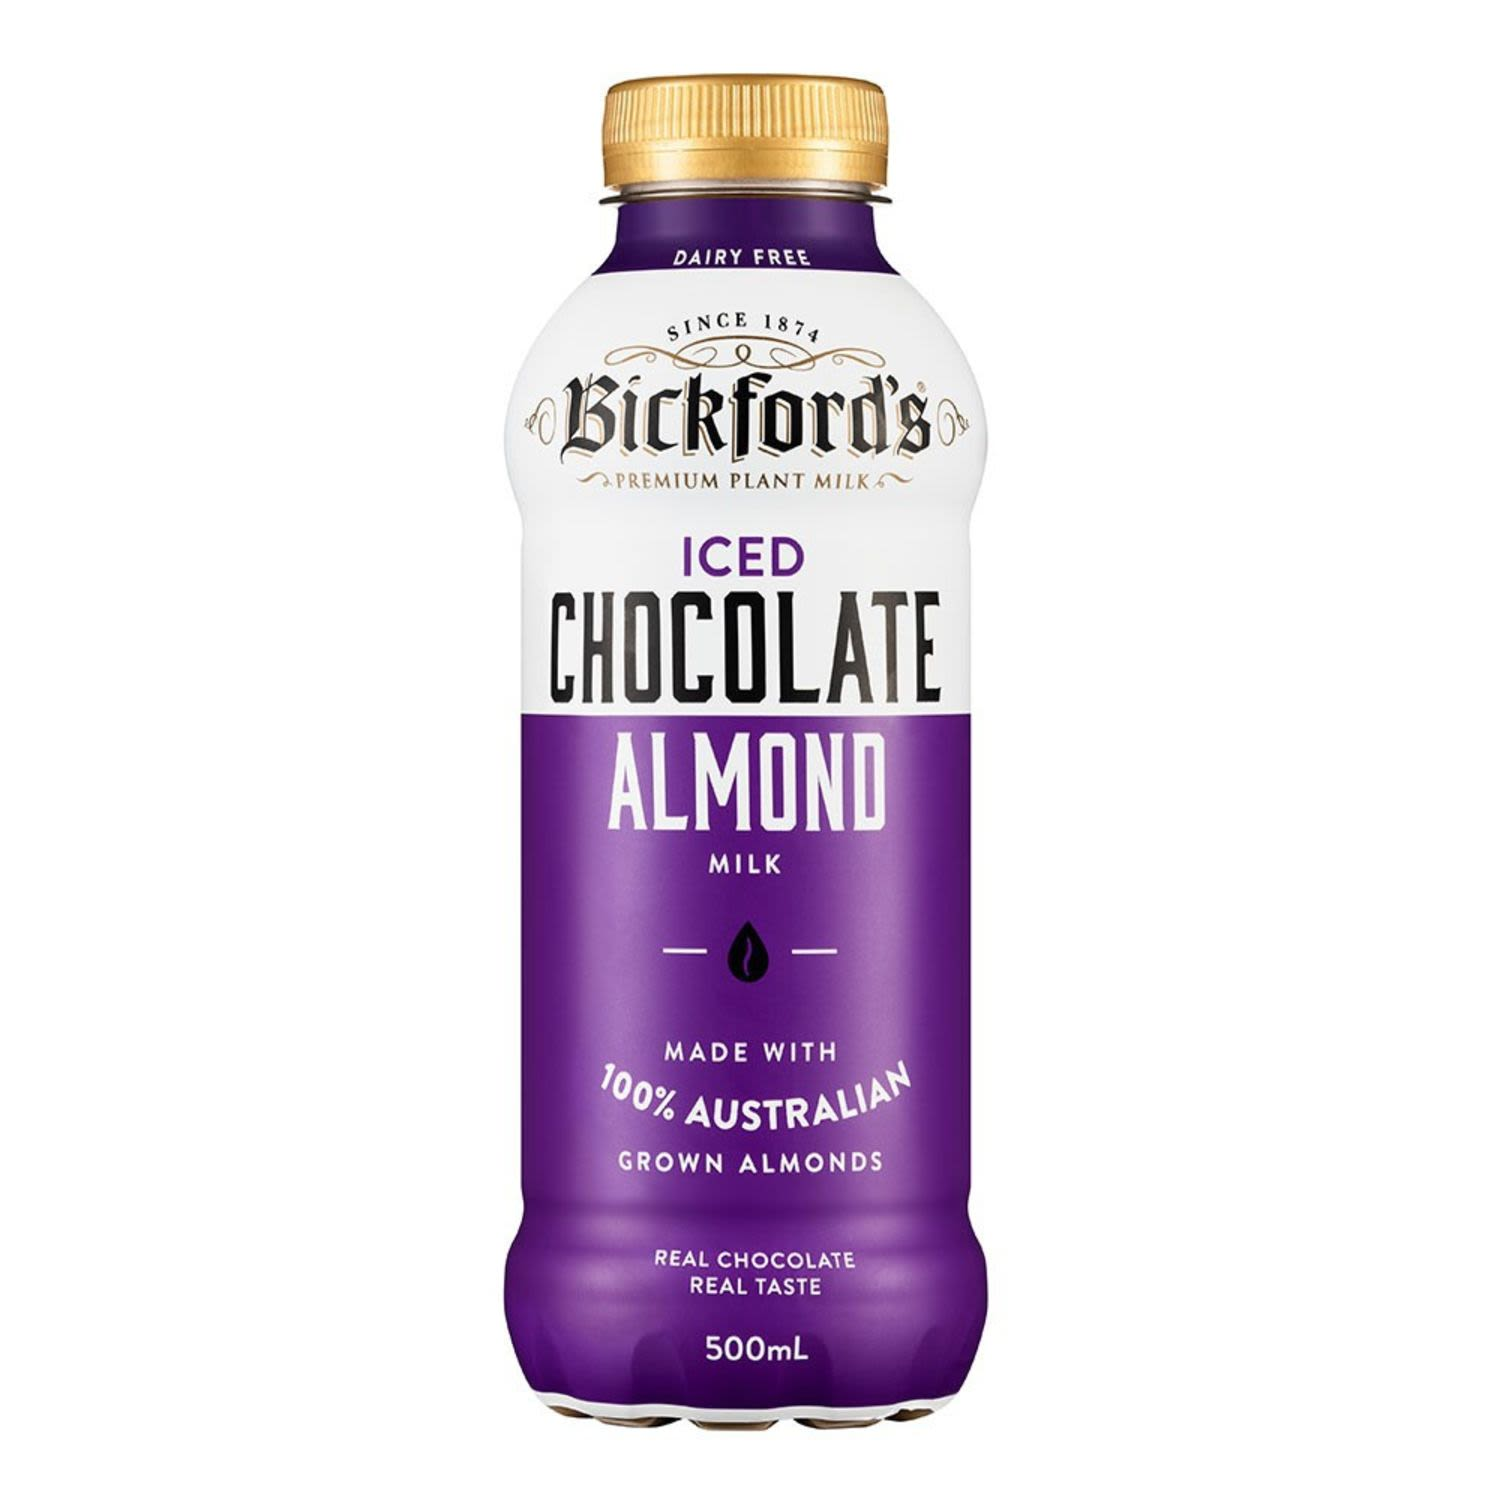 Bickford's Iced Chocolate Almond, 500 Millilitre